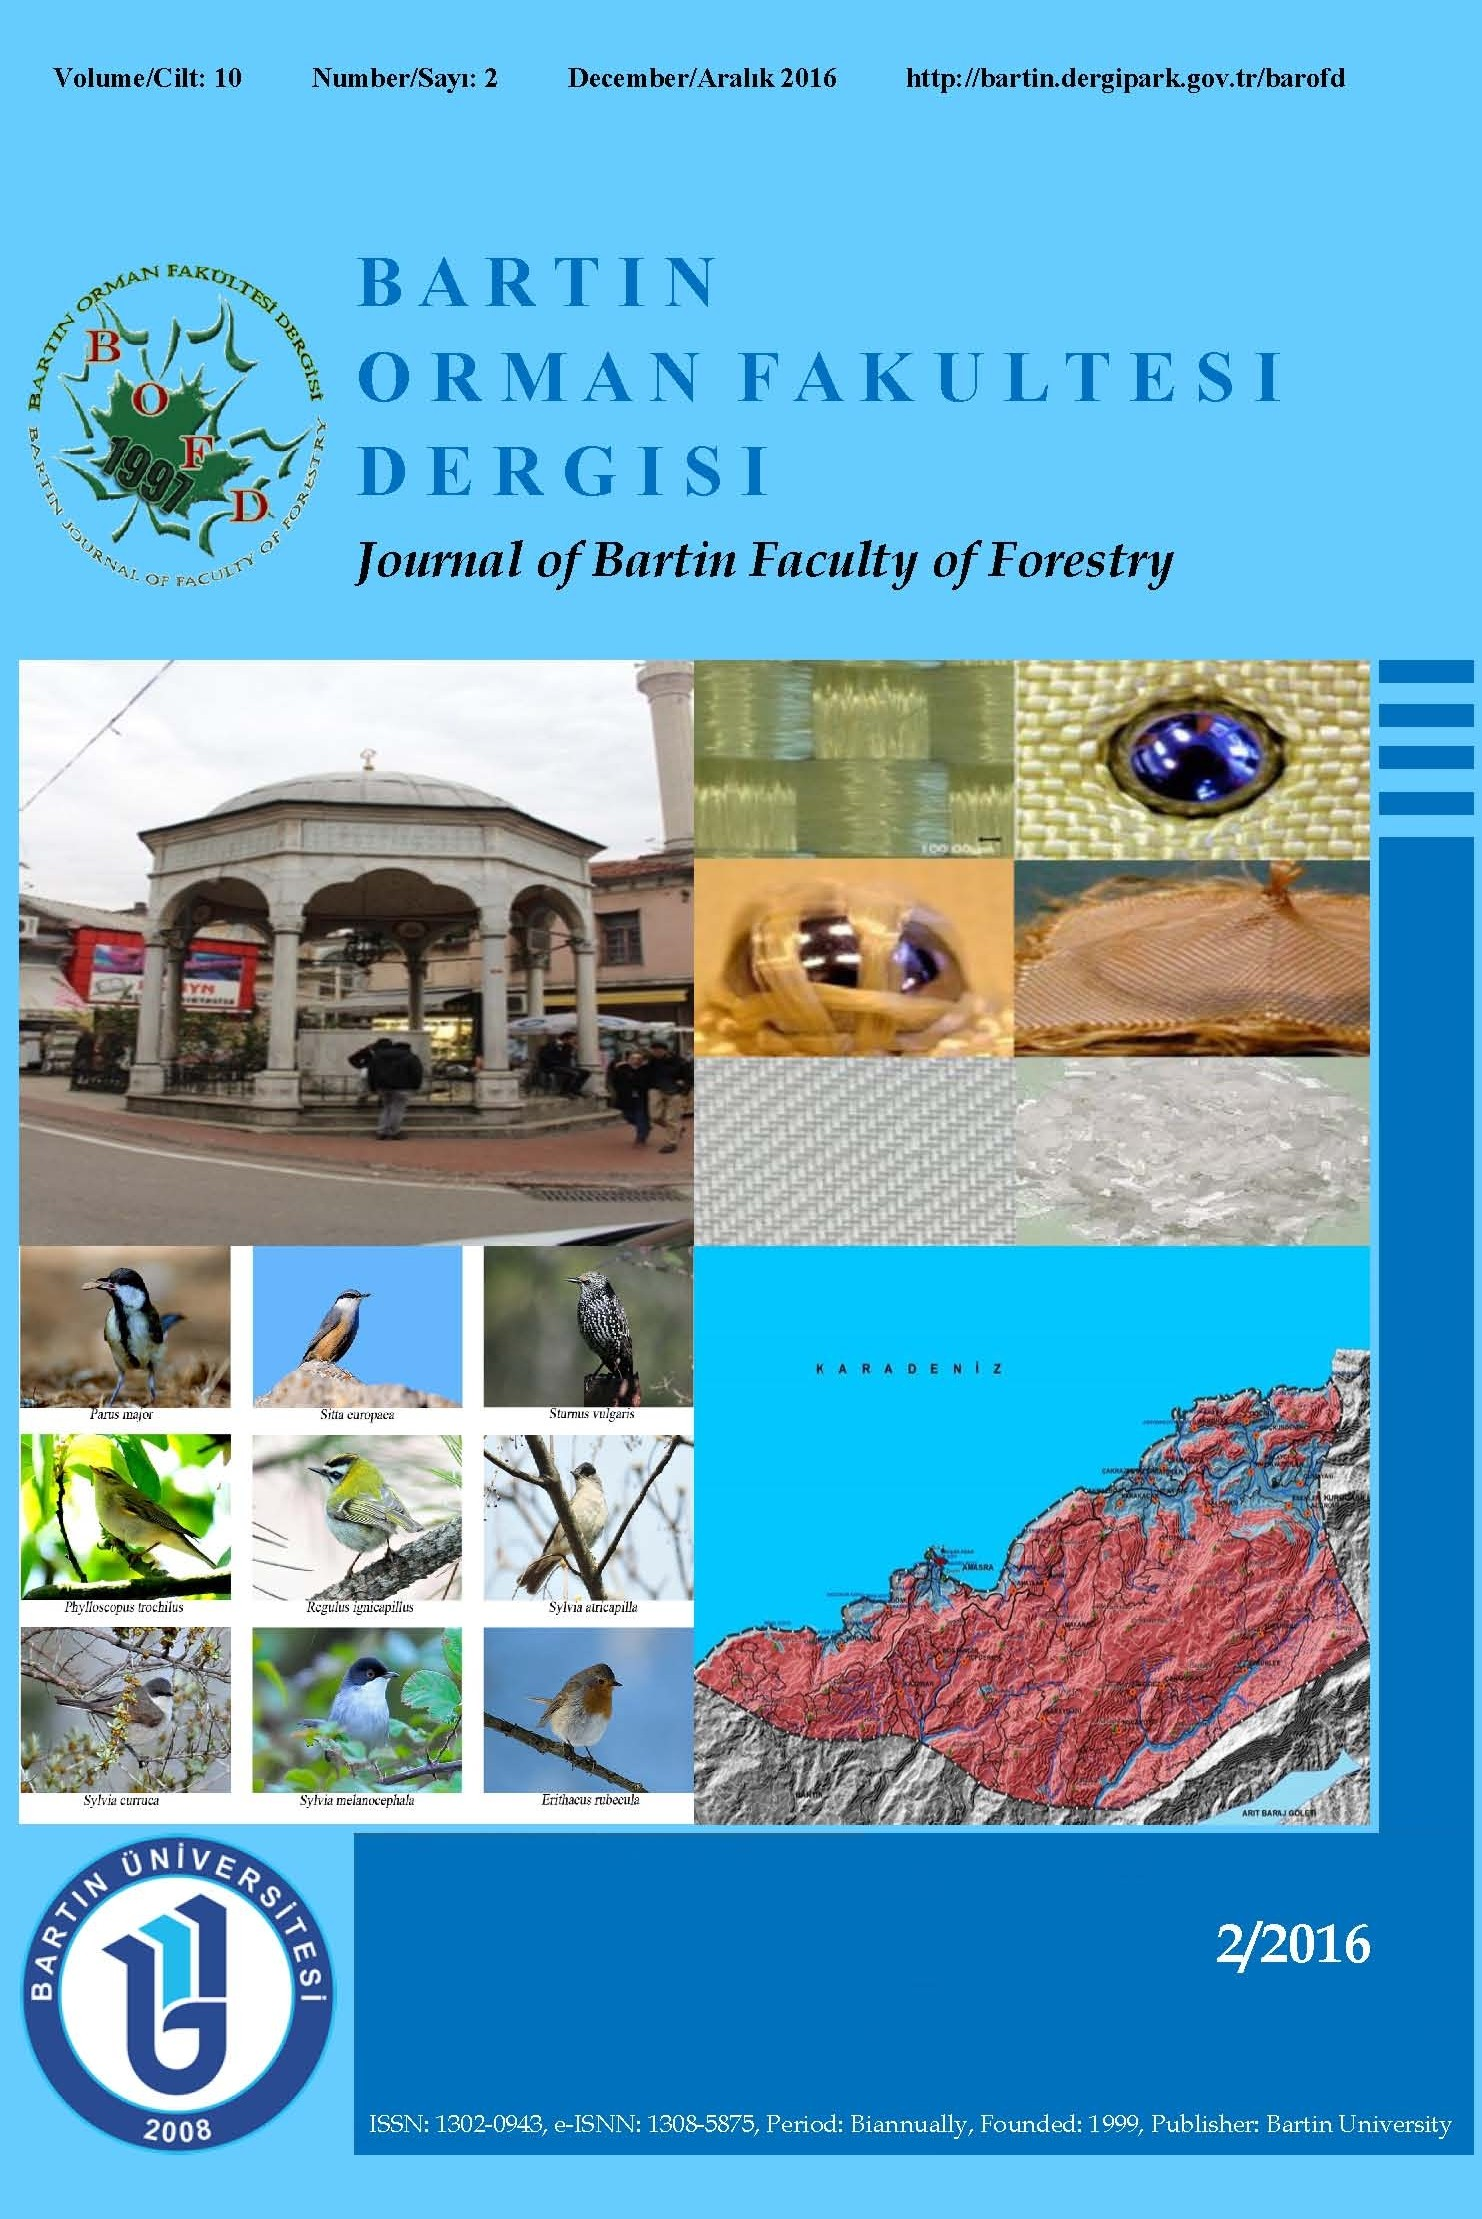 Journal of Bartin Faculty of Forestry